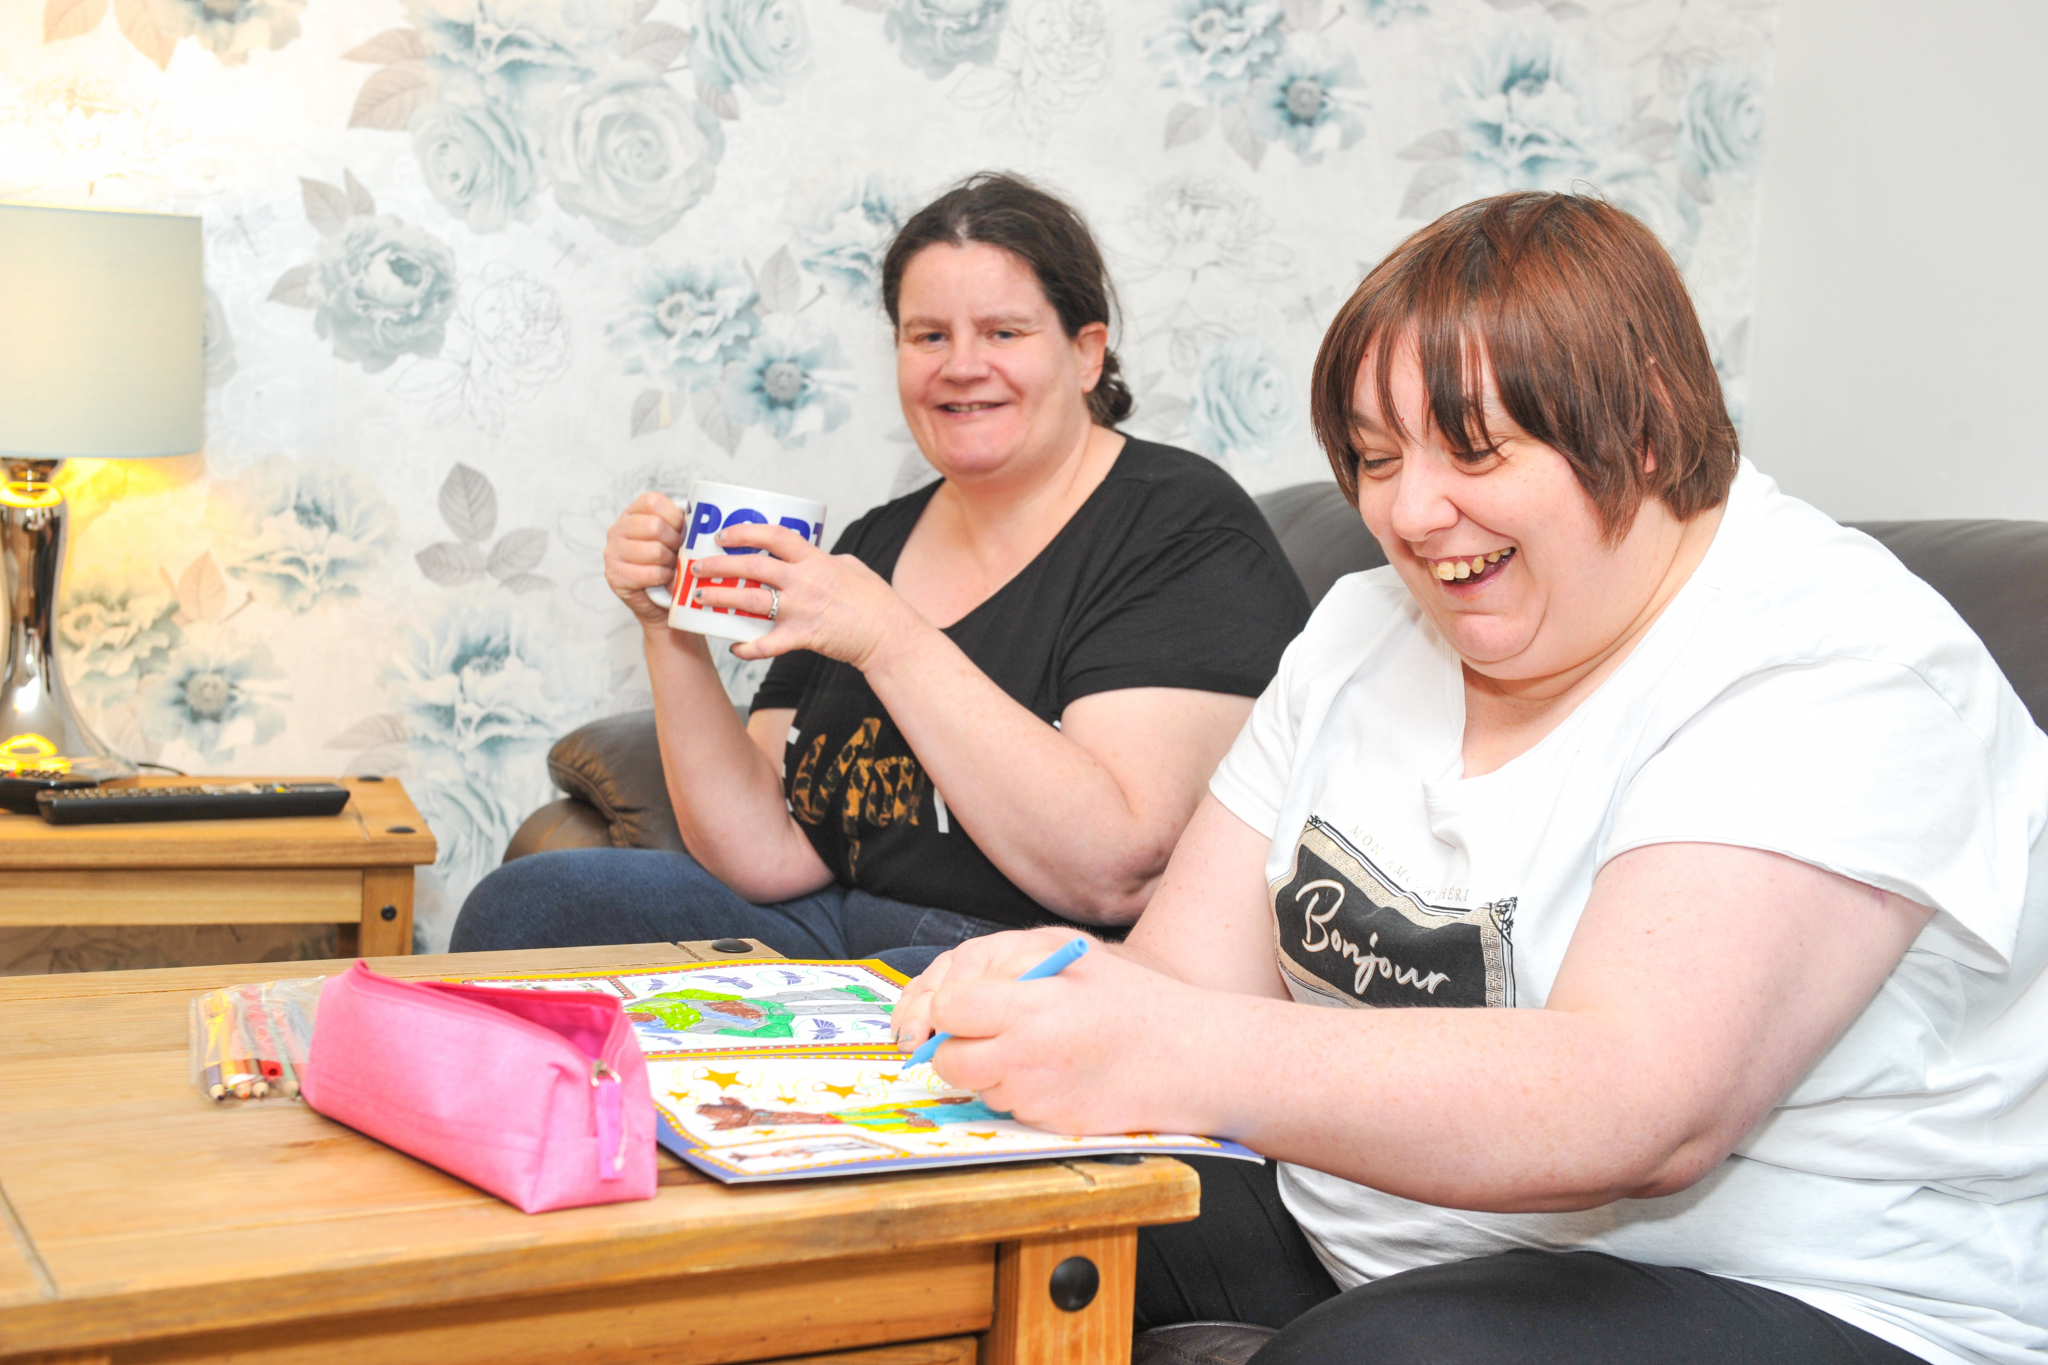 How can I get support for a family member who lives with autism? lifeways